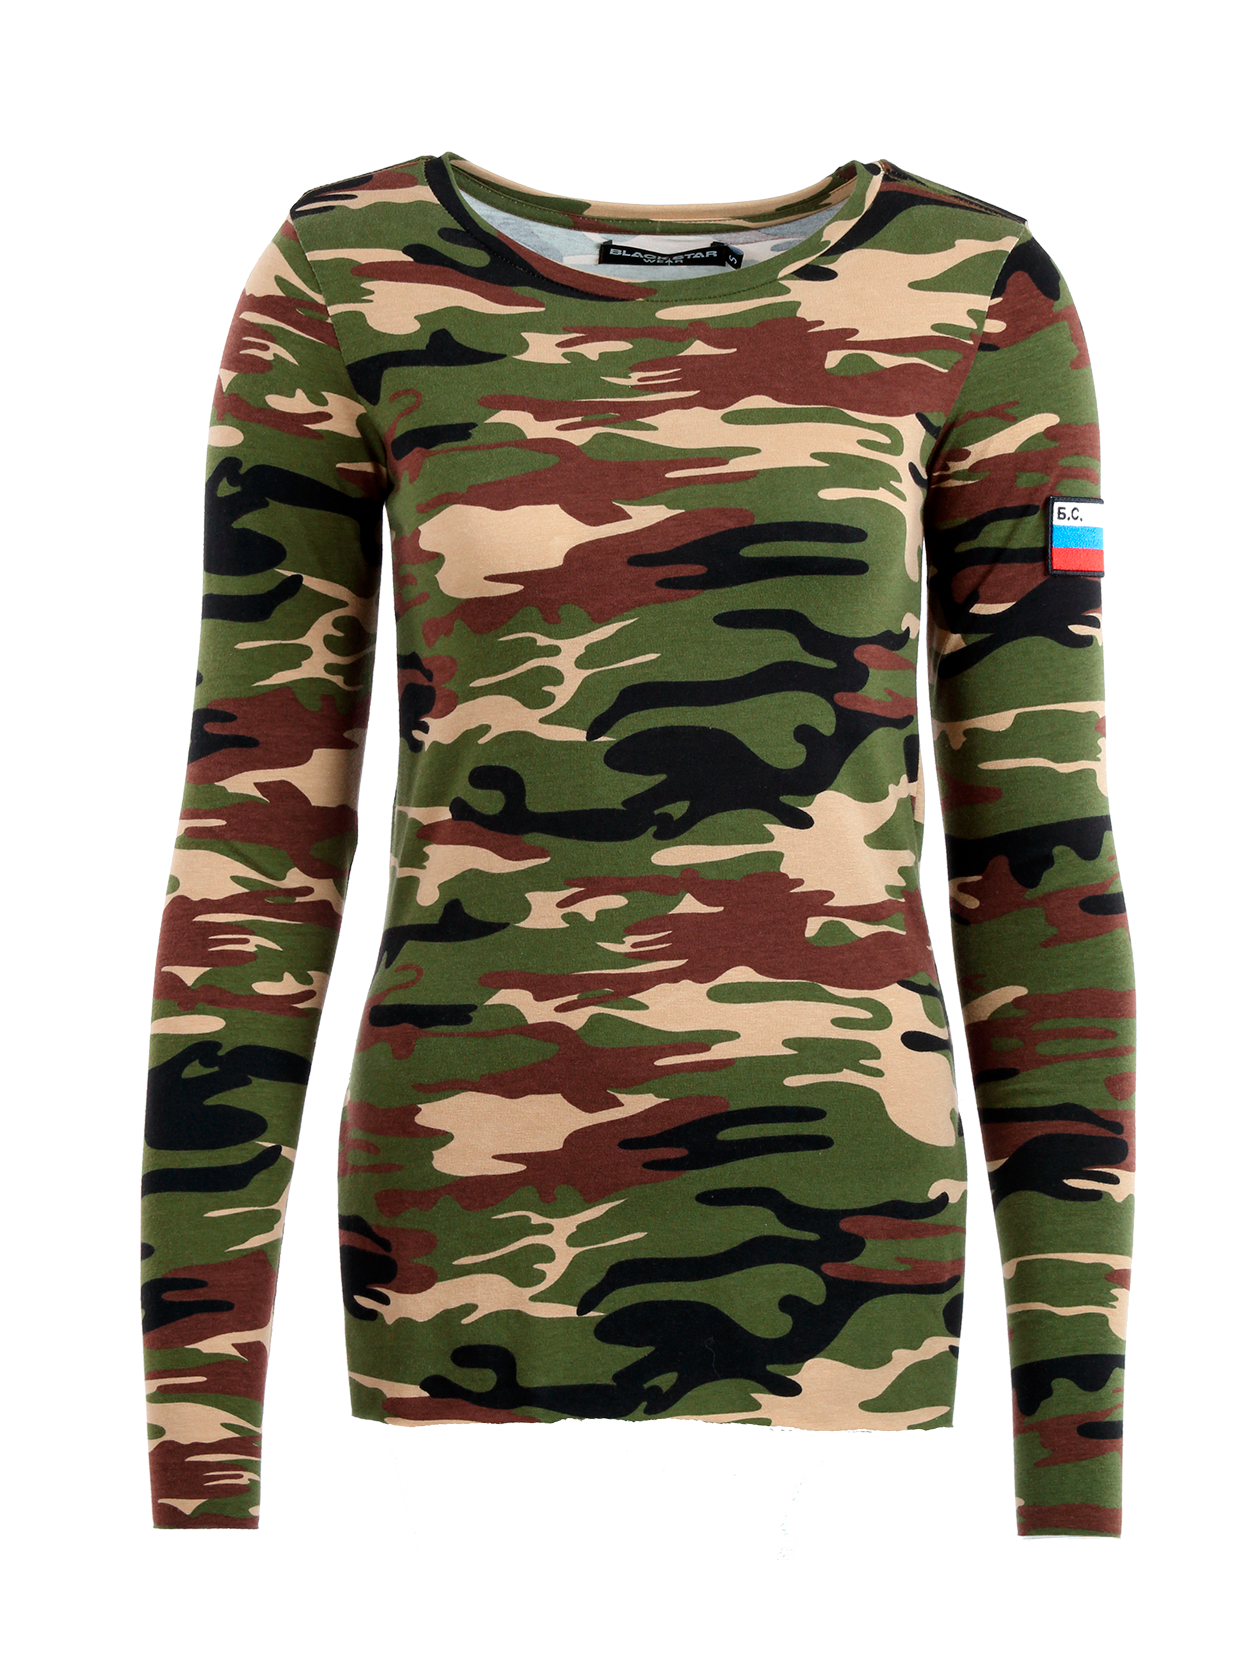 Womens long sleeve t-shirt Camo PatchWomens long sleeve t-shirt by Black Star Wear. Slim fit, o-neck, long sleeves, raw cut, small cuts on sides. Patch with a russian tricolor on the left sleeve. Natural cotton (95%), lycra (5%). Avaliable in camouflage.<br><br>size: S<br>color: Camouflage<br>gender: female